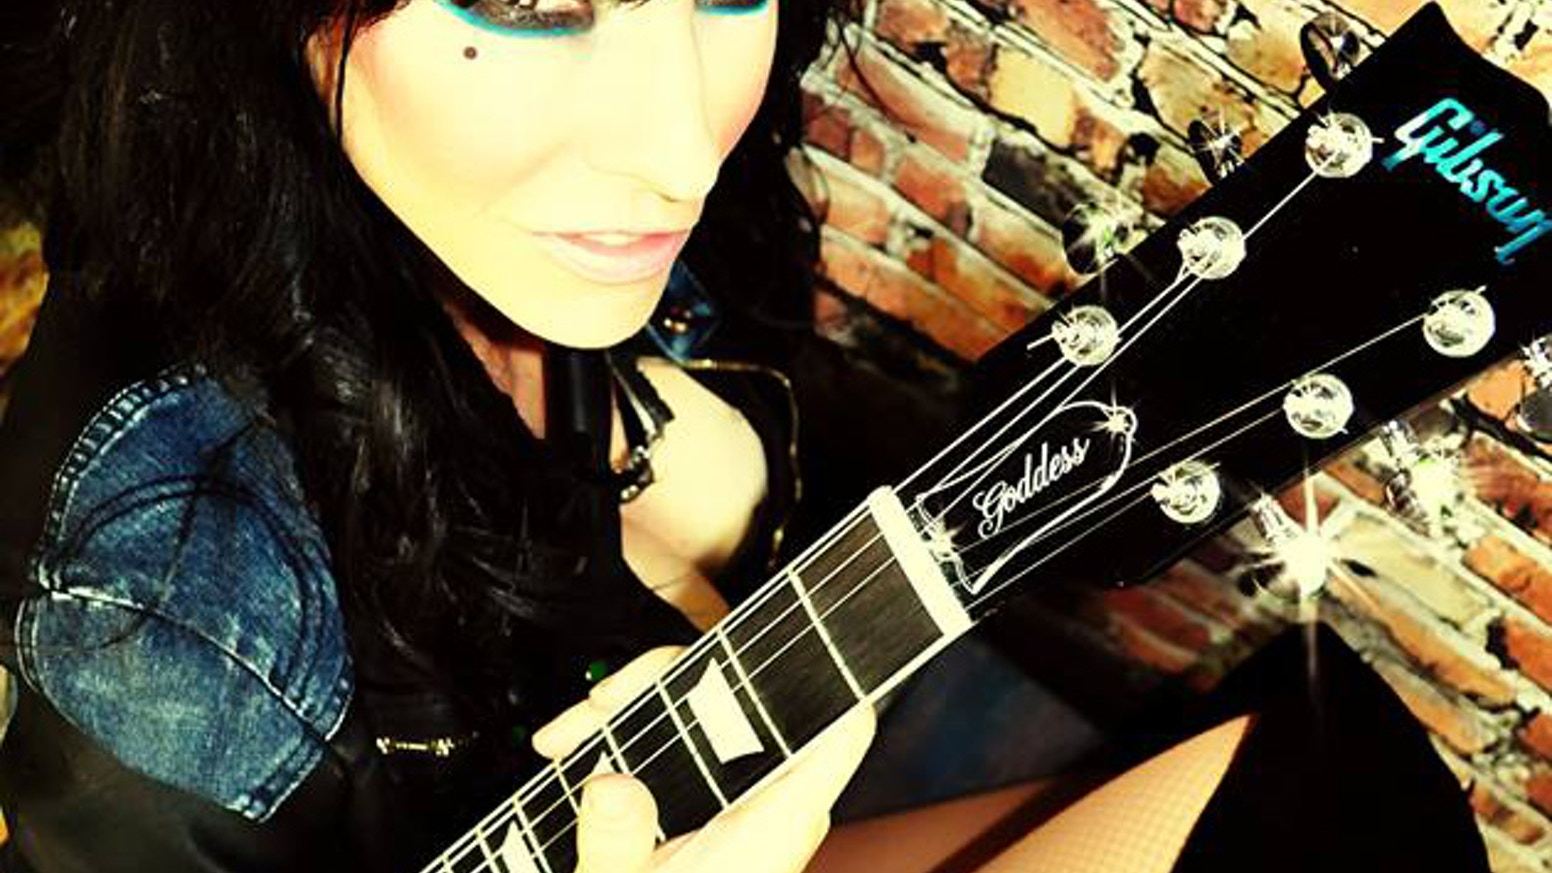 """Known as the """"Super Girl from the USA""""! Leona X is set to record a new CD! The new songs are raw, sexy and guitar heavy rock n roll!"""